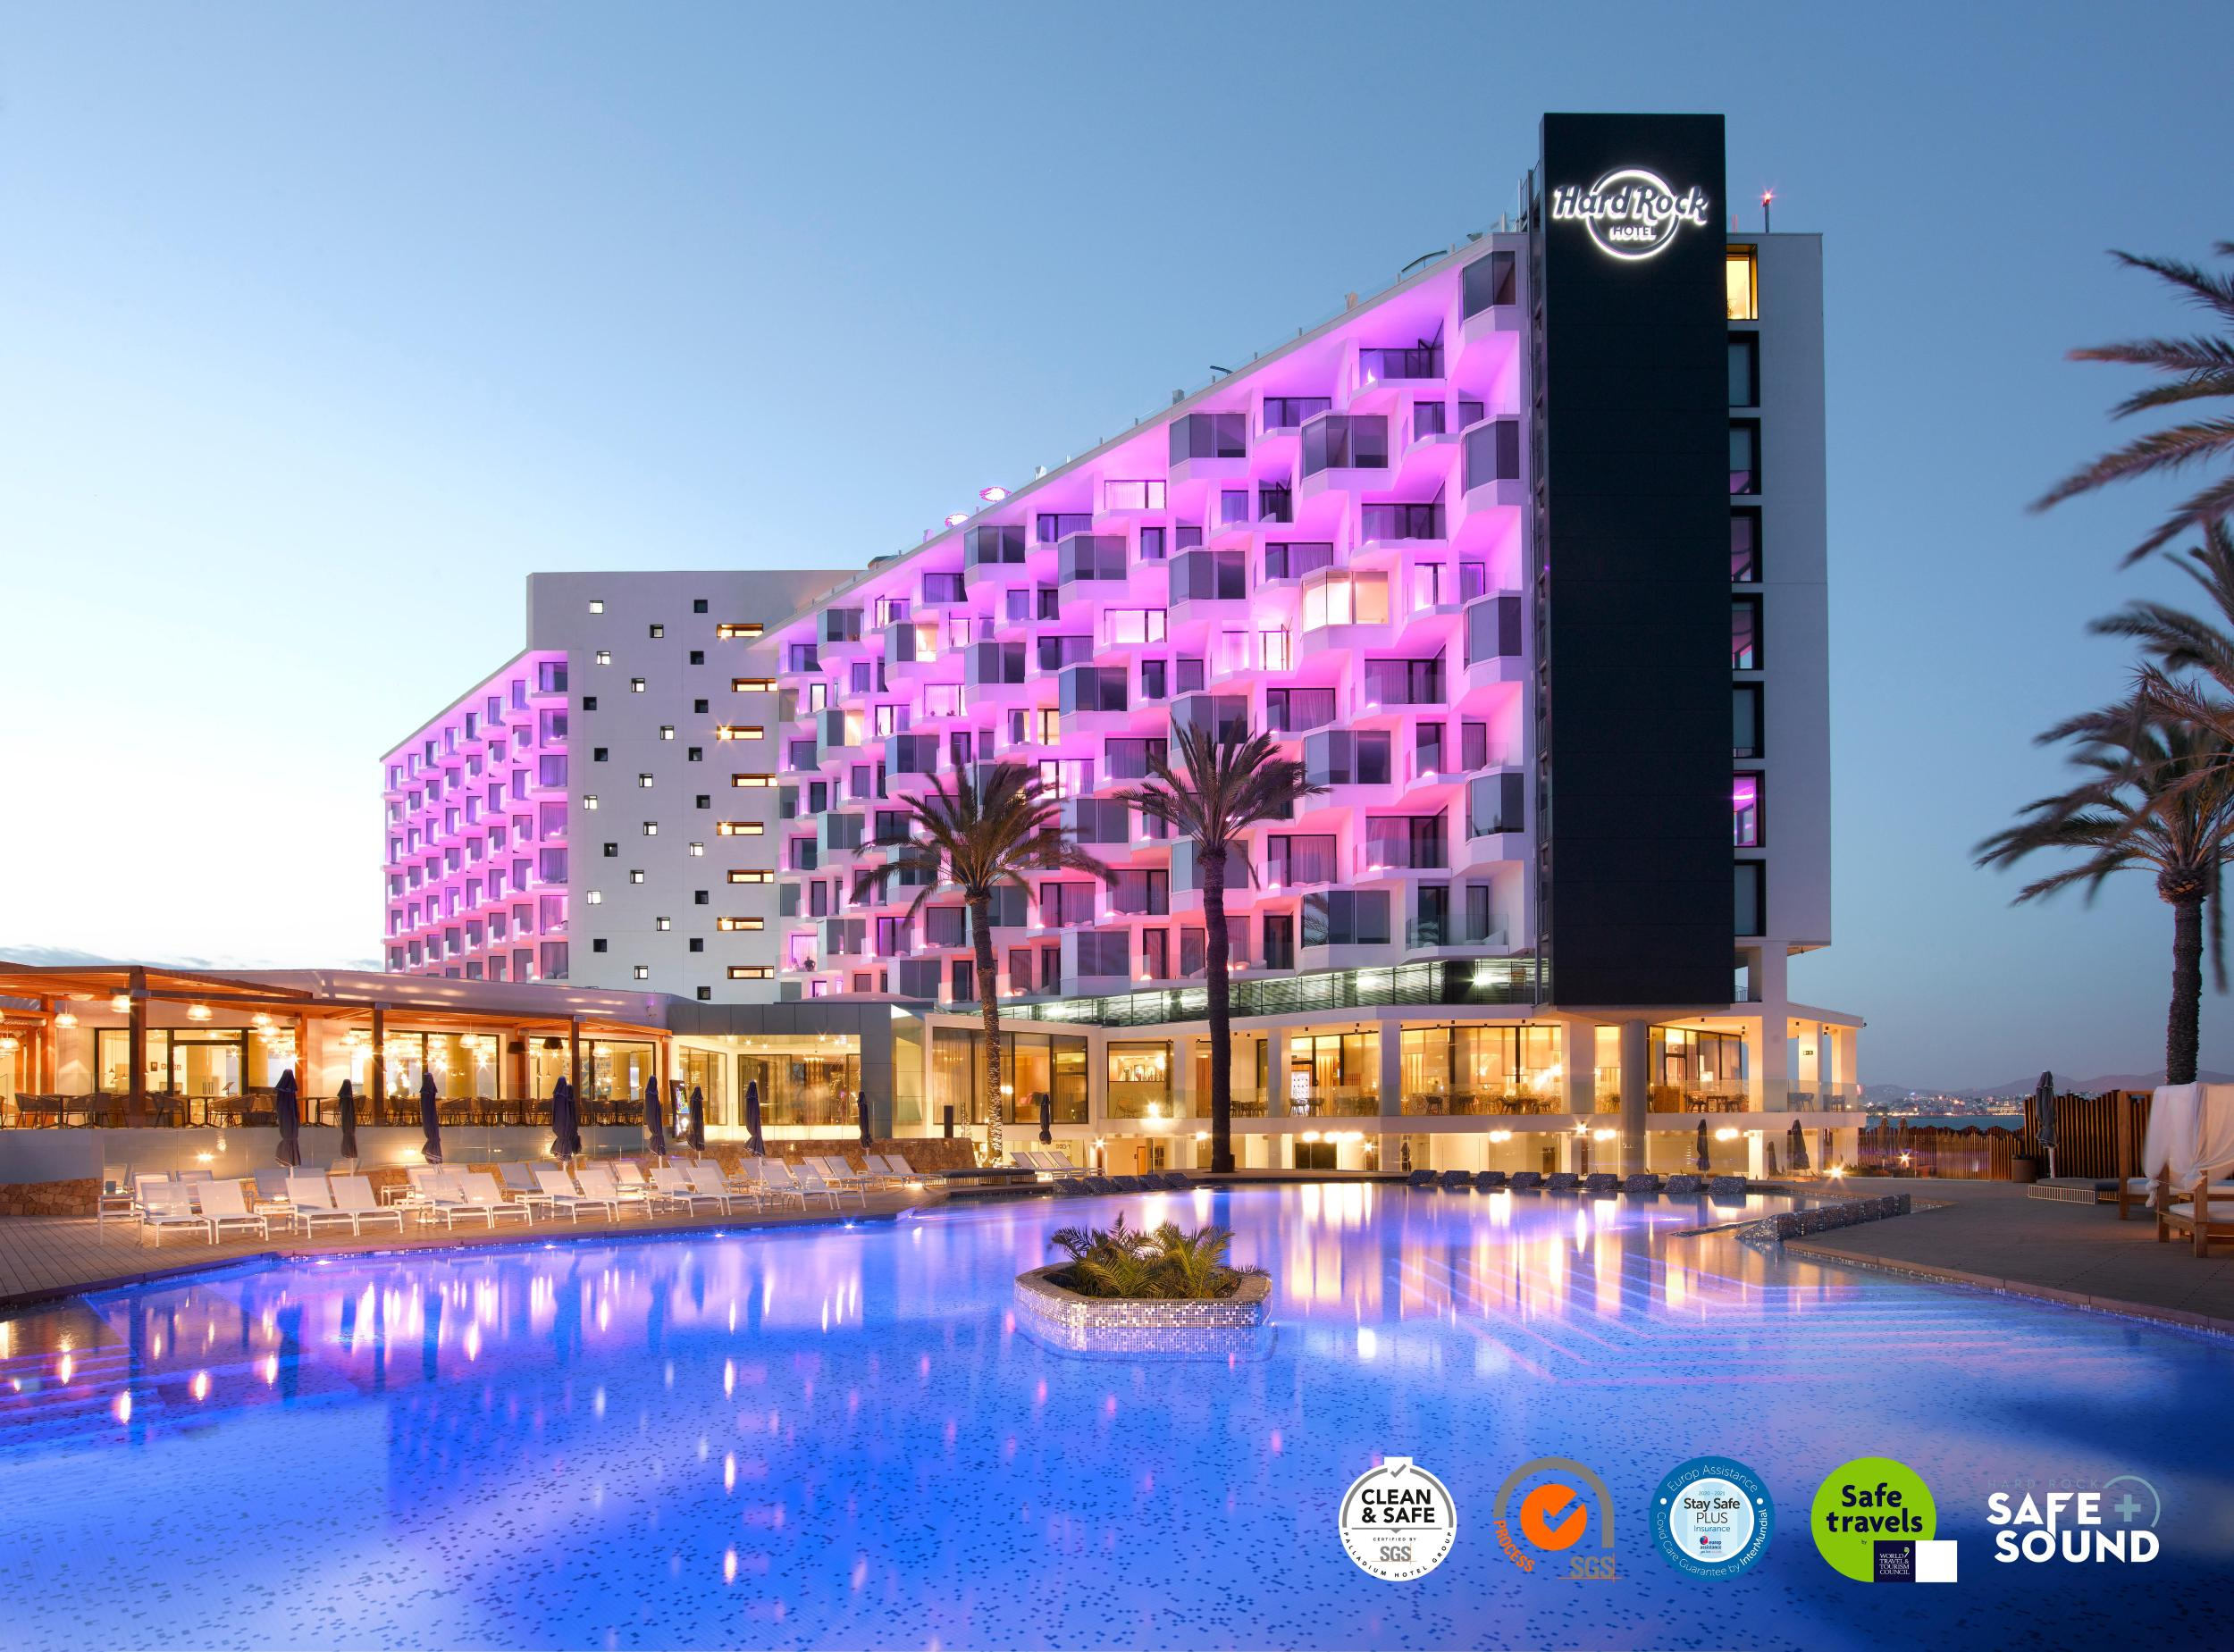 Hard Rock Hotel Ibiza in Playa d'en Bossa, Ibiza, Balearic Islands